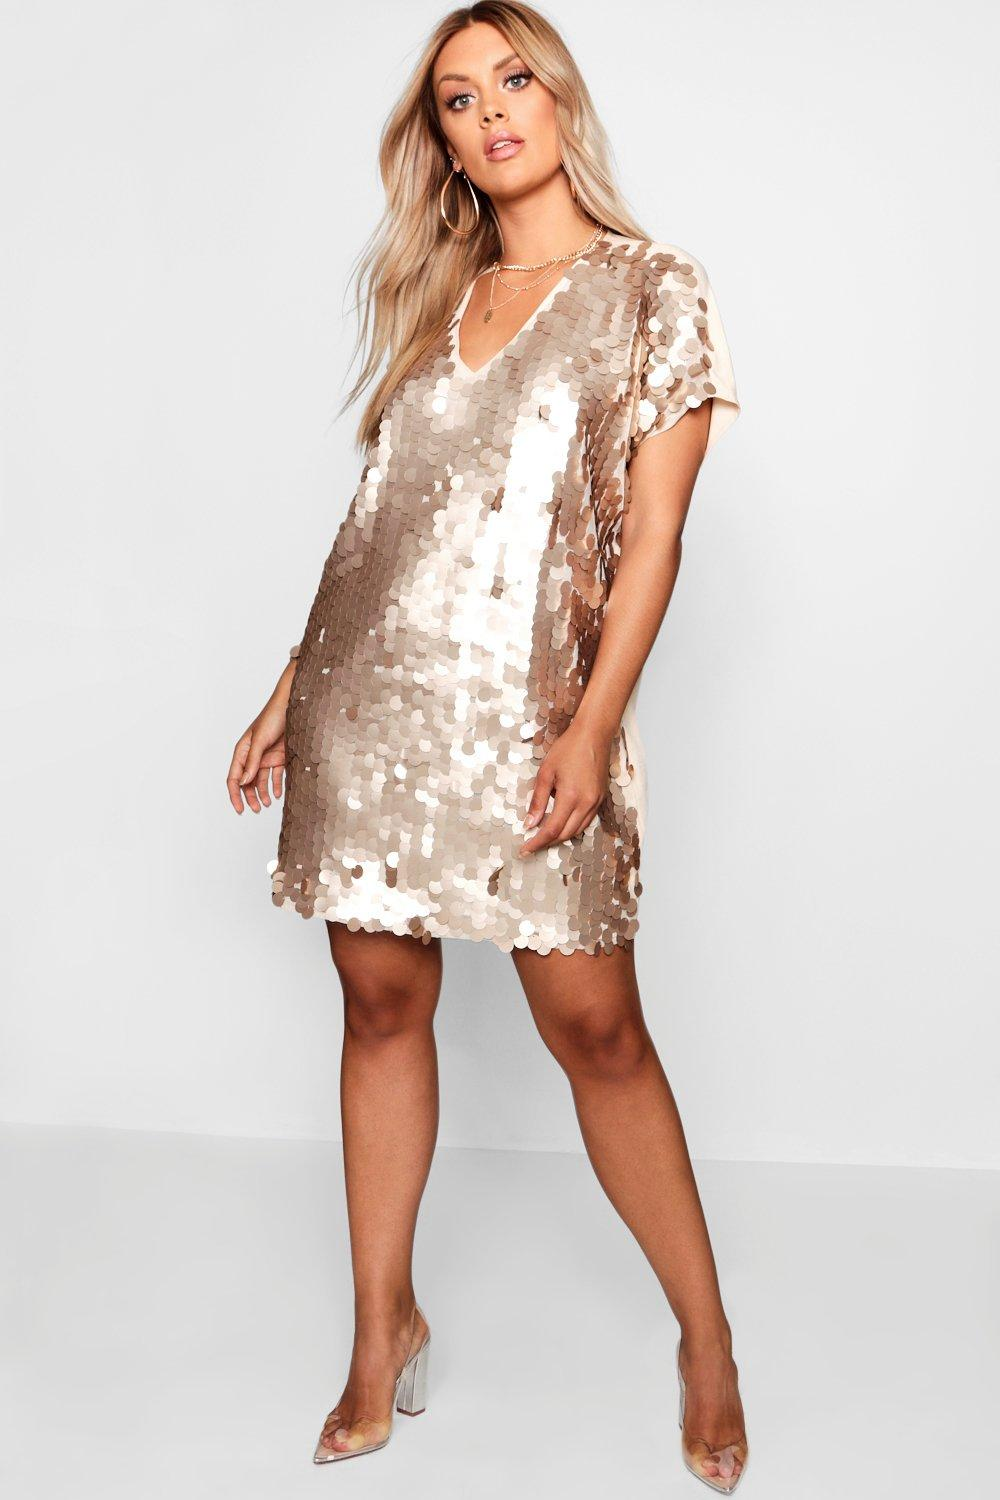 Buy Shift Gold dress pictures picture trends